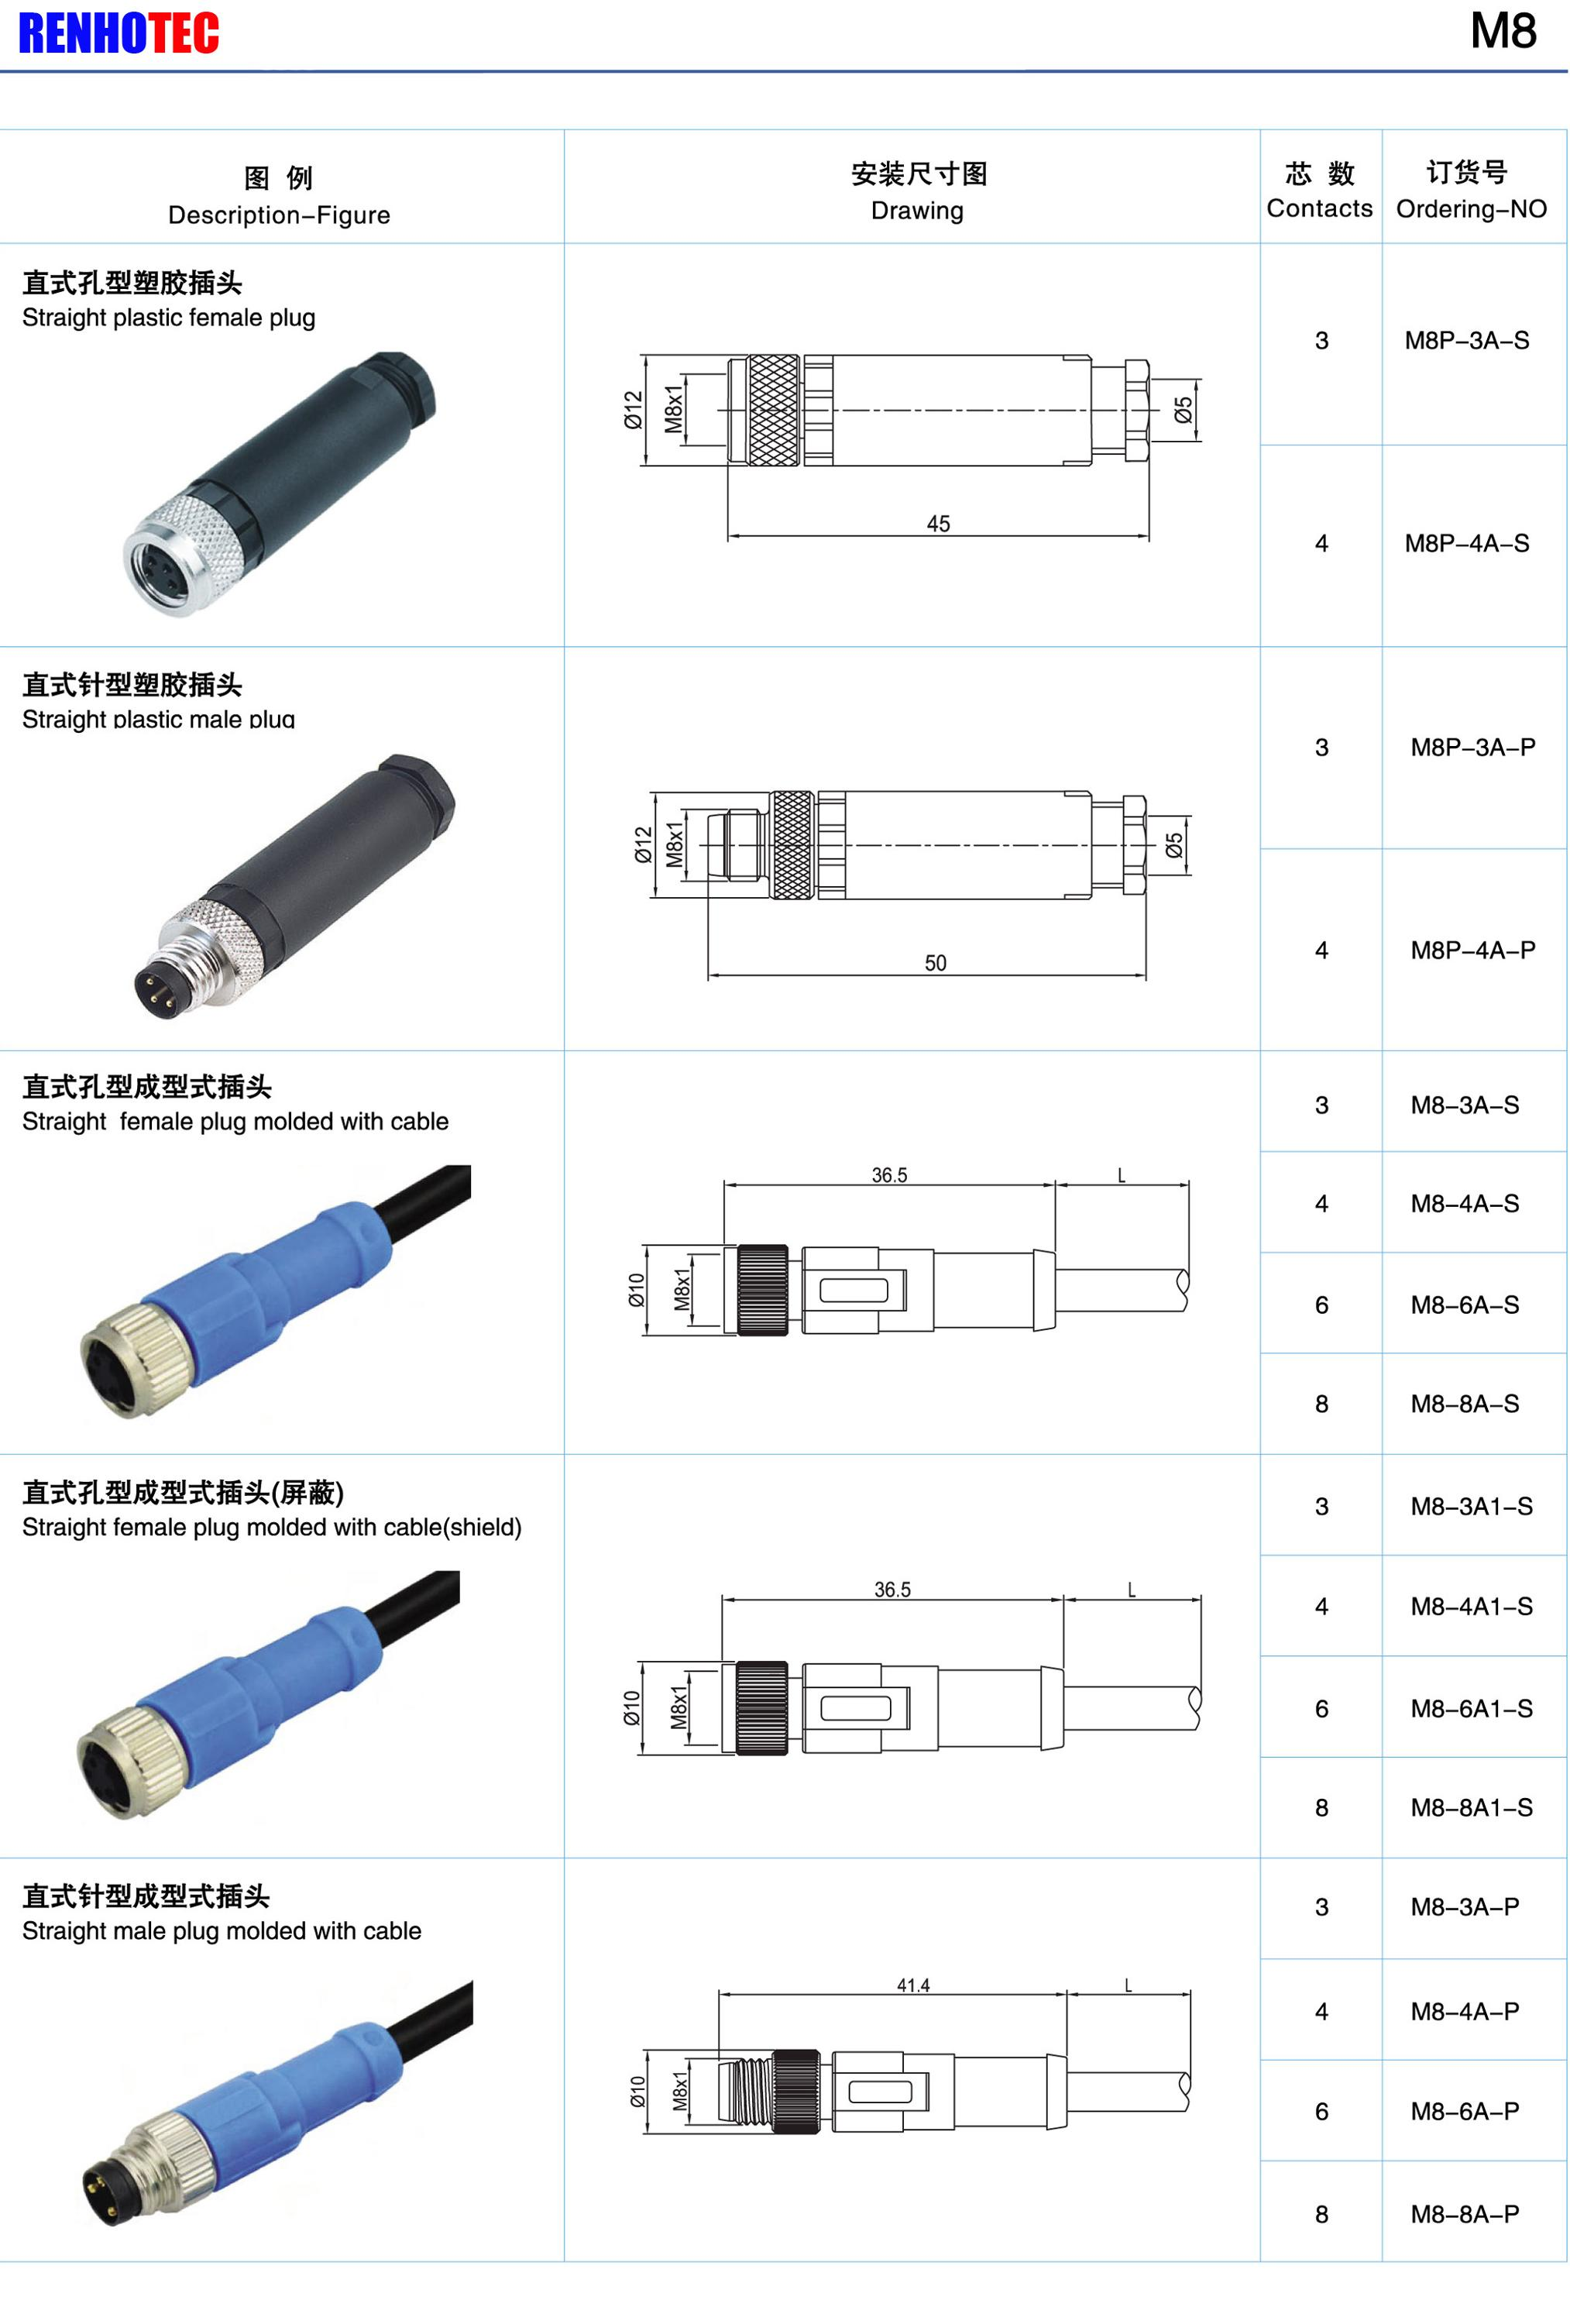 M8 4 Pin Male Connector Straight Molded Cable Pvc Awg Wire Buy 3 Wiring Diagram